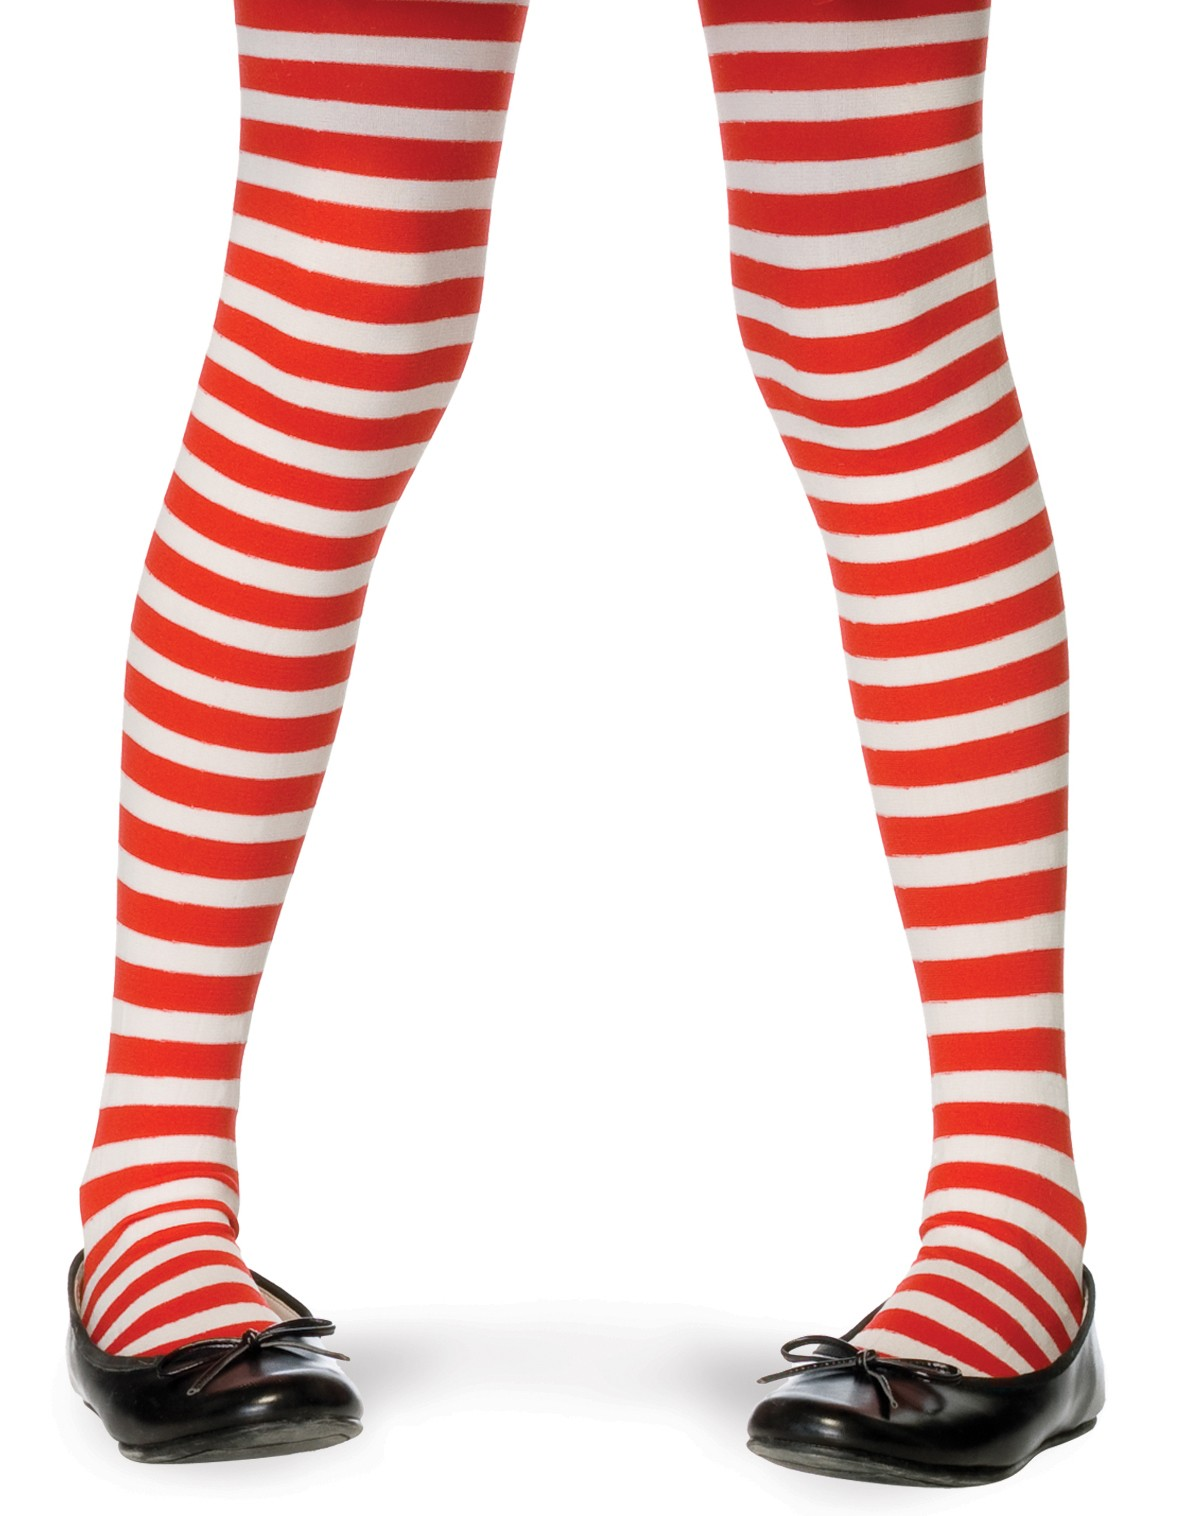 147457d365a29 Child Christmas Theme Striped Tights Costume Accessory Red White.jpg